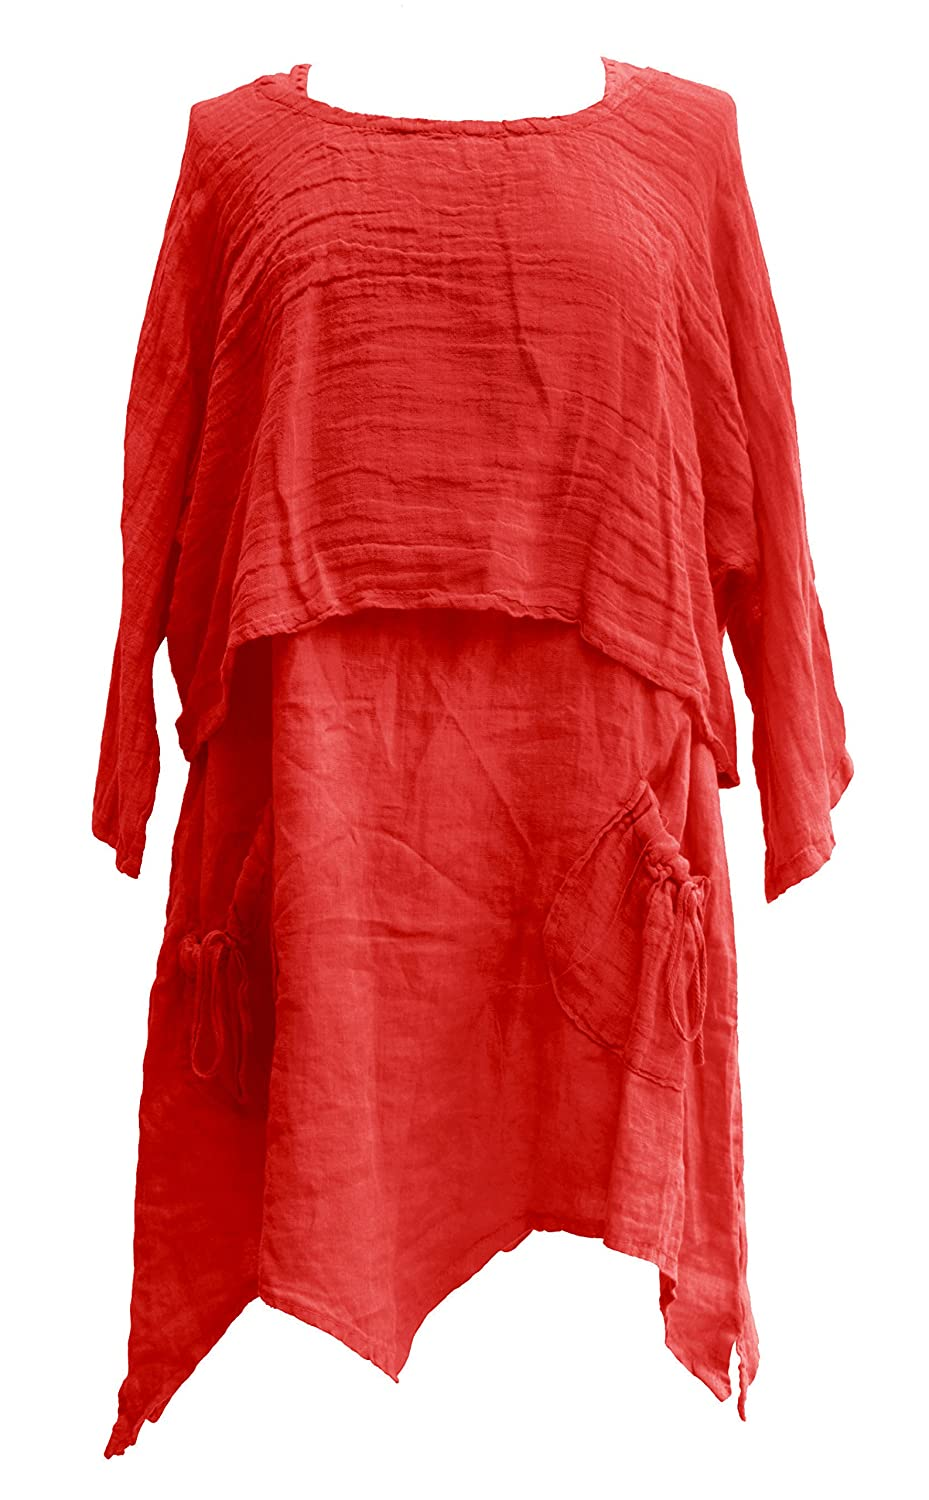 Ladies Womens Italian Lagenlook Quirky Linen Shrug Tunic Twin Set Dress One Size